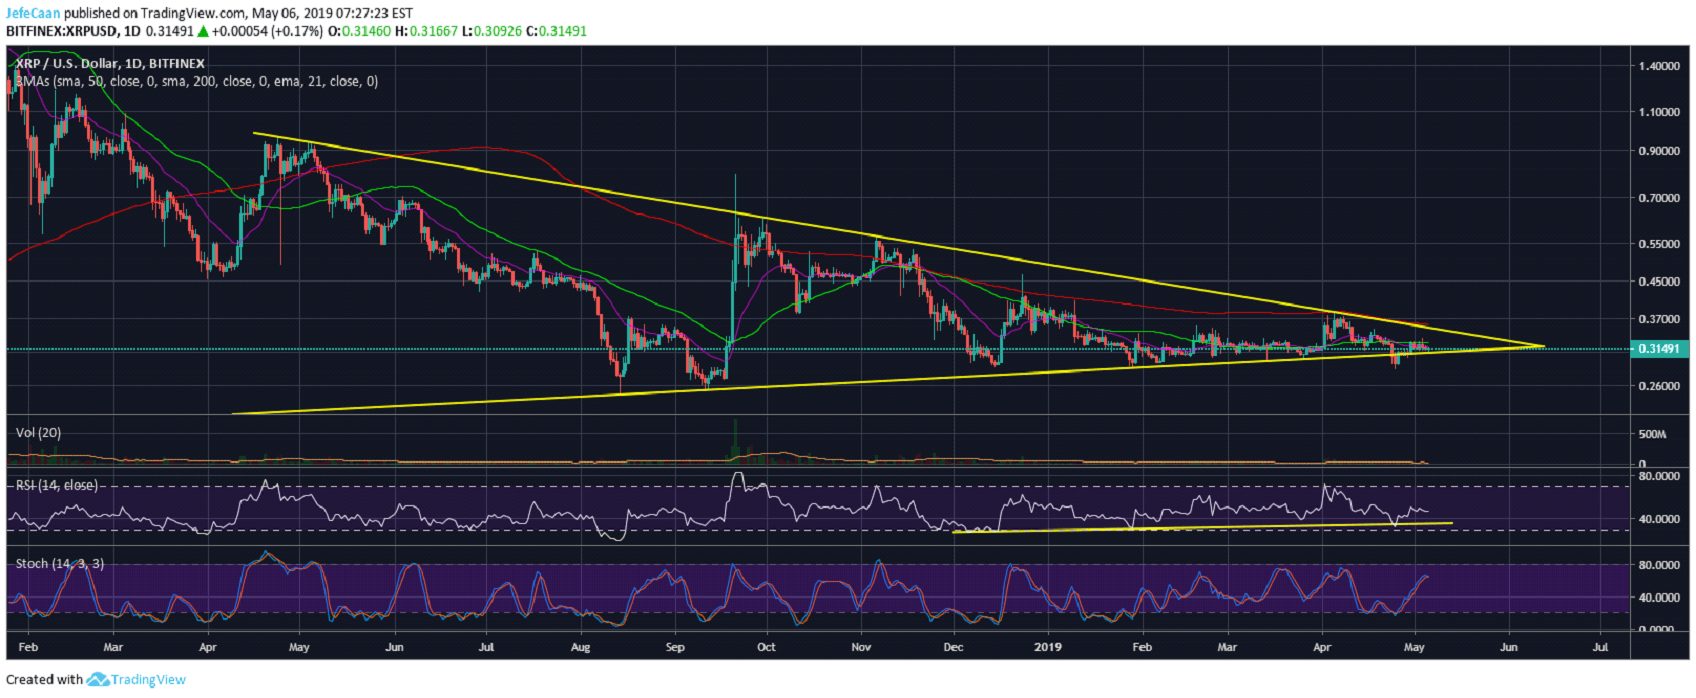 Ripple (XRP) Seeks Direction As Price Remains Below 50 Day Moving Average